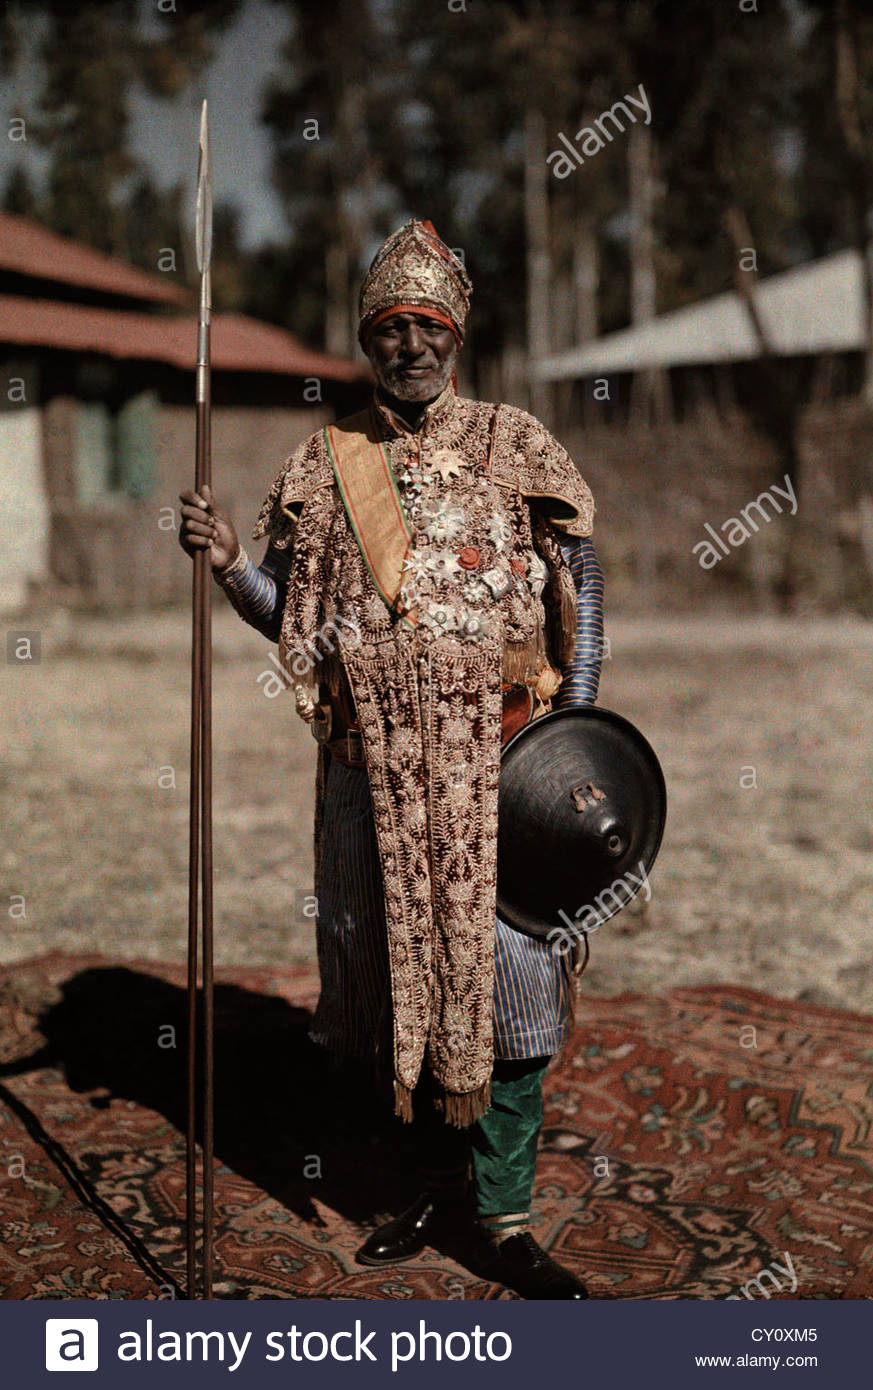 Fetawrari Mou lou Gueta, the Ethiopian Minister of War, is shown here. - Stock Image